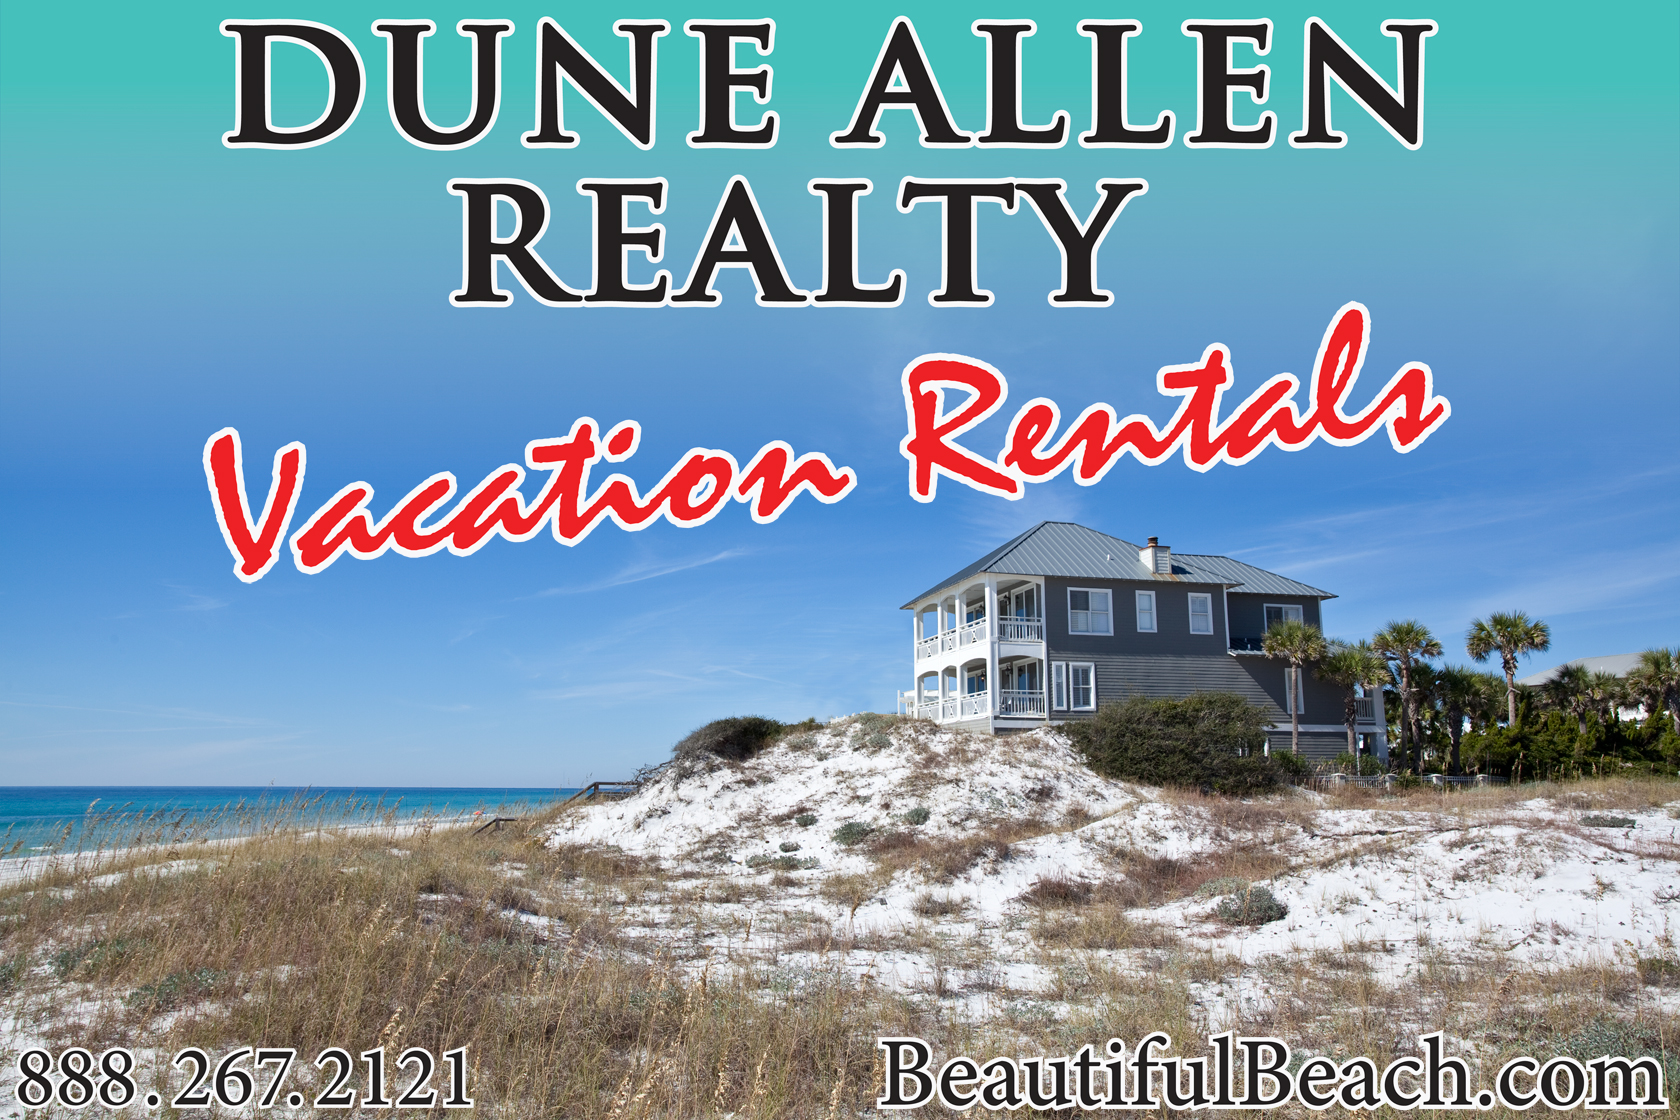 30A South Walton 30Asametime Dune Allen Realty Vacation Rentals is Giving Away a Free 7 day Vacation